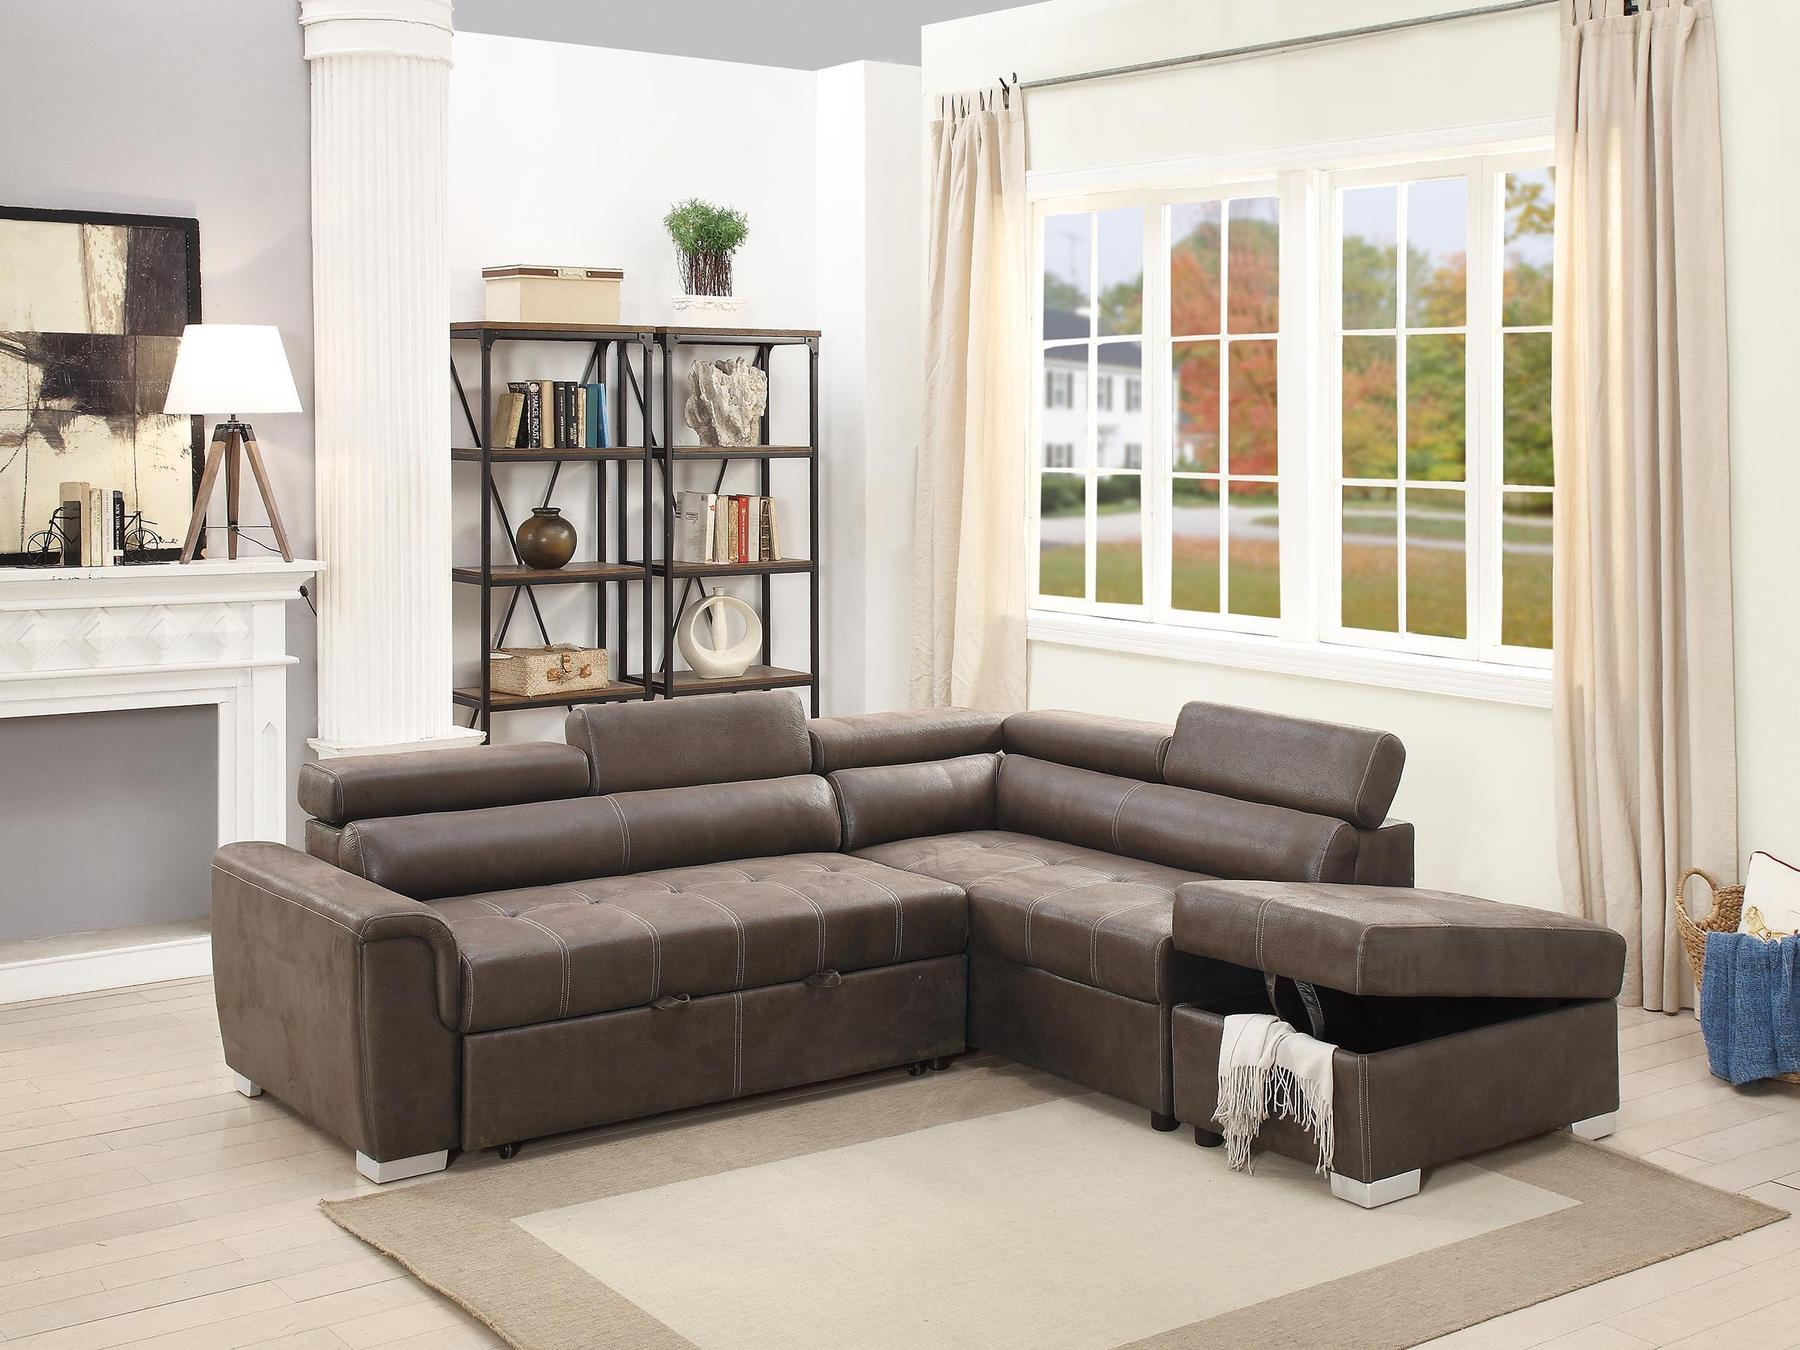 Dark Coffee Leatherette Convertible Sectional Sofa Bed w/ Storage ...